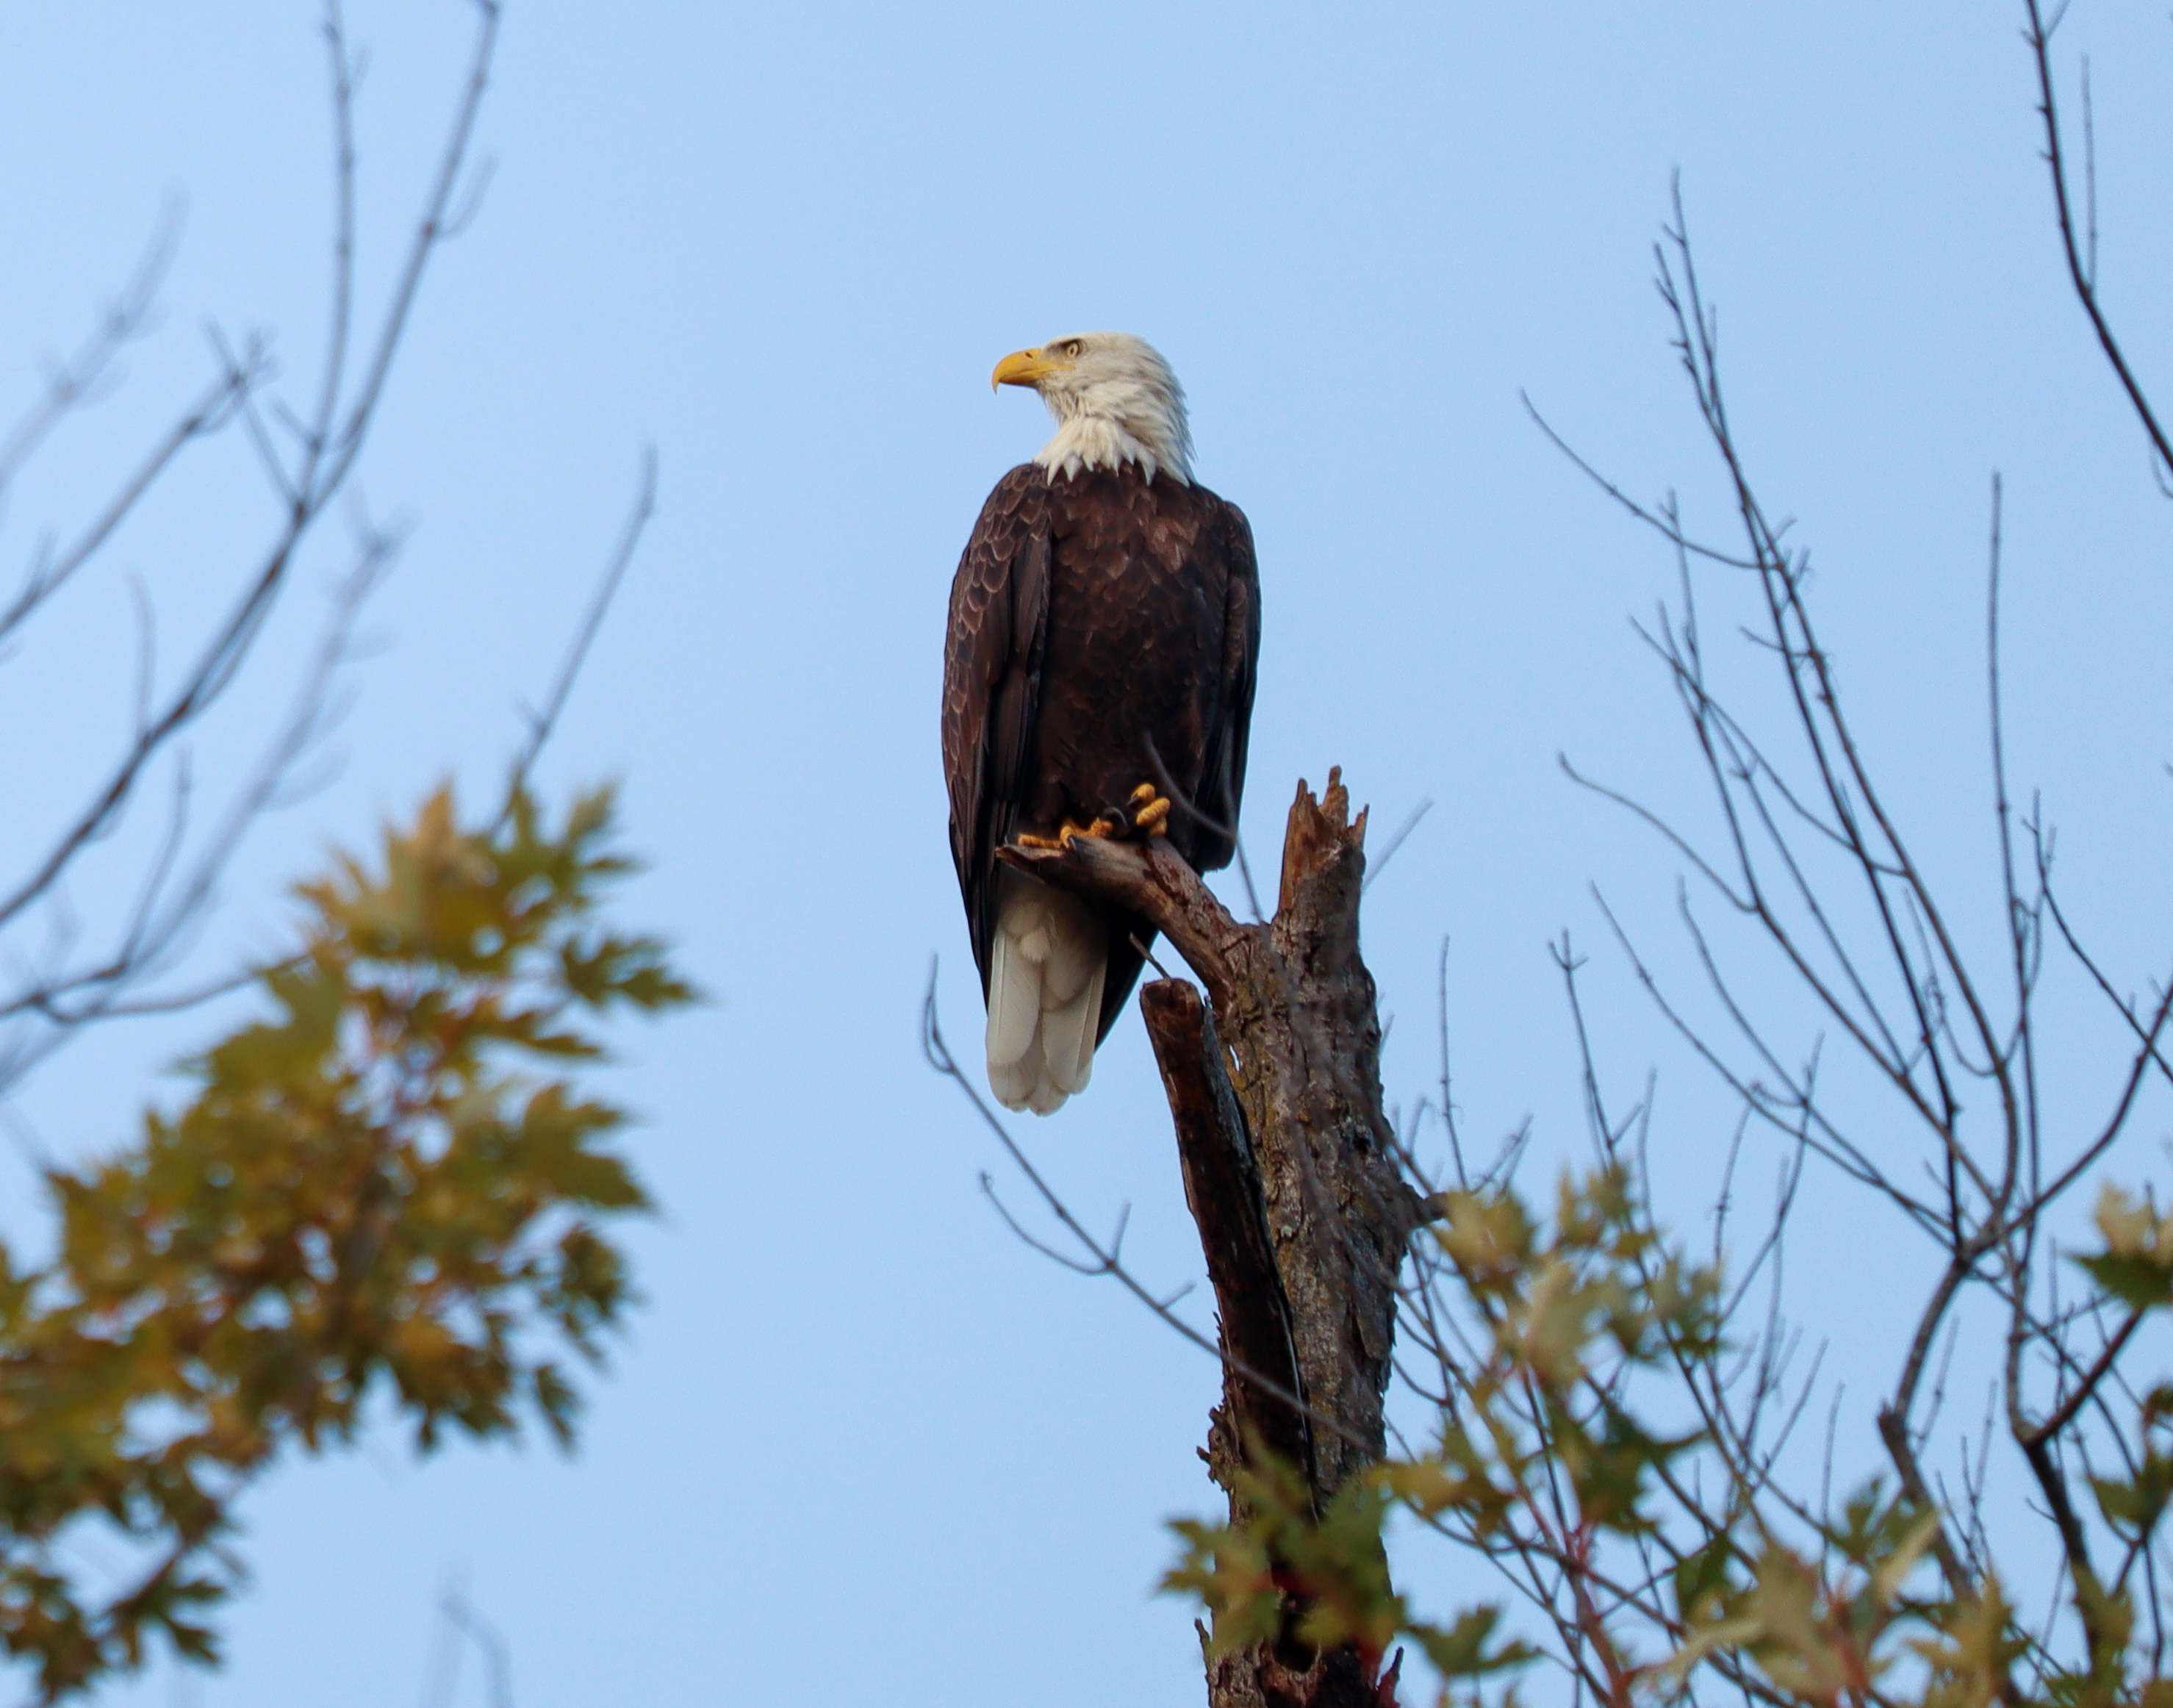 134857 download wallpaper Animals, Bald Eagle, White-Headed Eagle, Bird, Predator, Branch, Wildlife screensavers and pictures for free